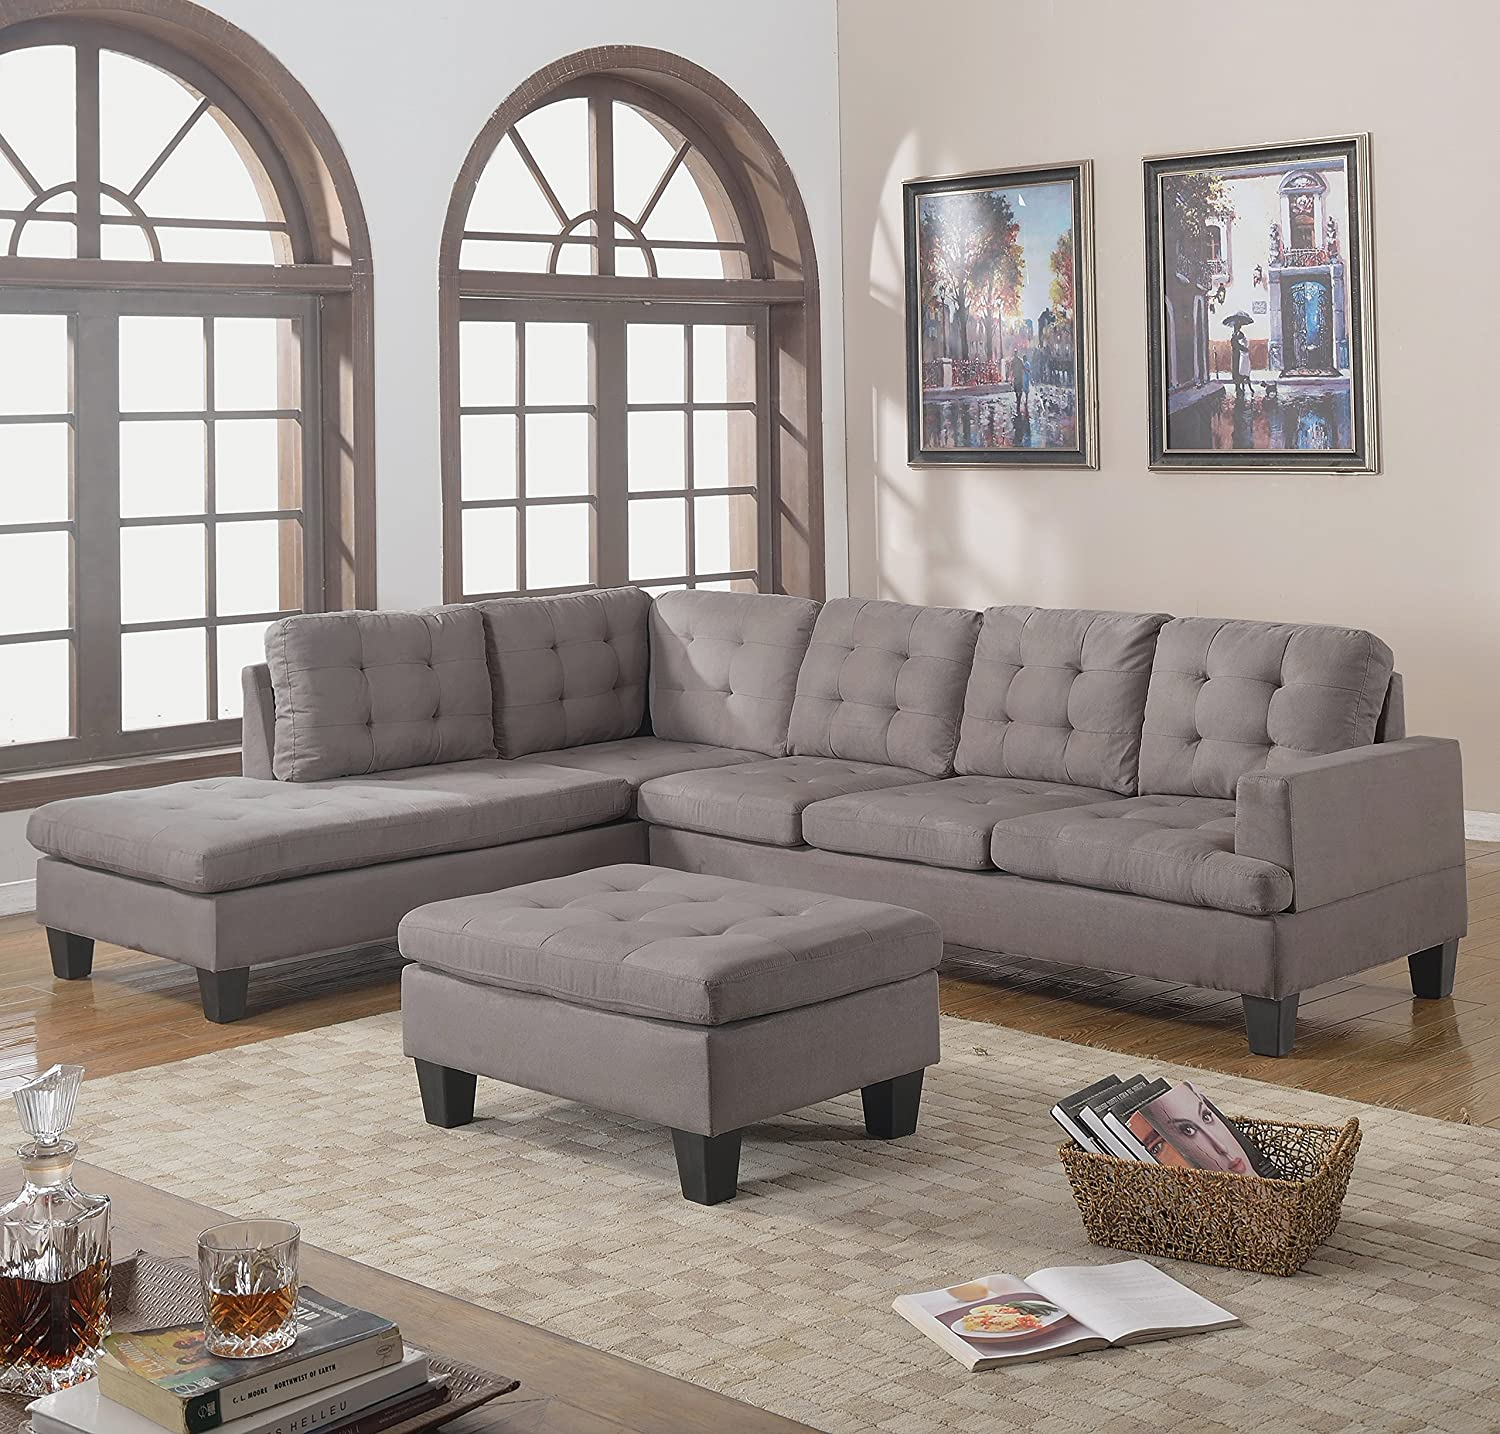 groups sofa product furniture group sd walnut room living loveseat amazon